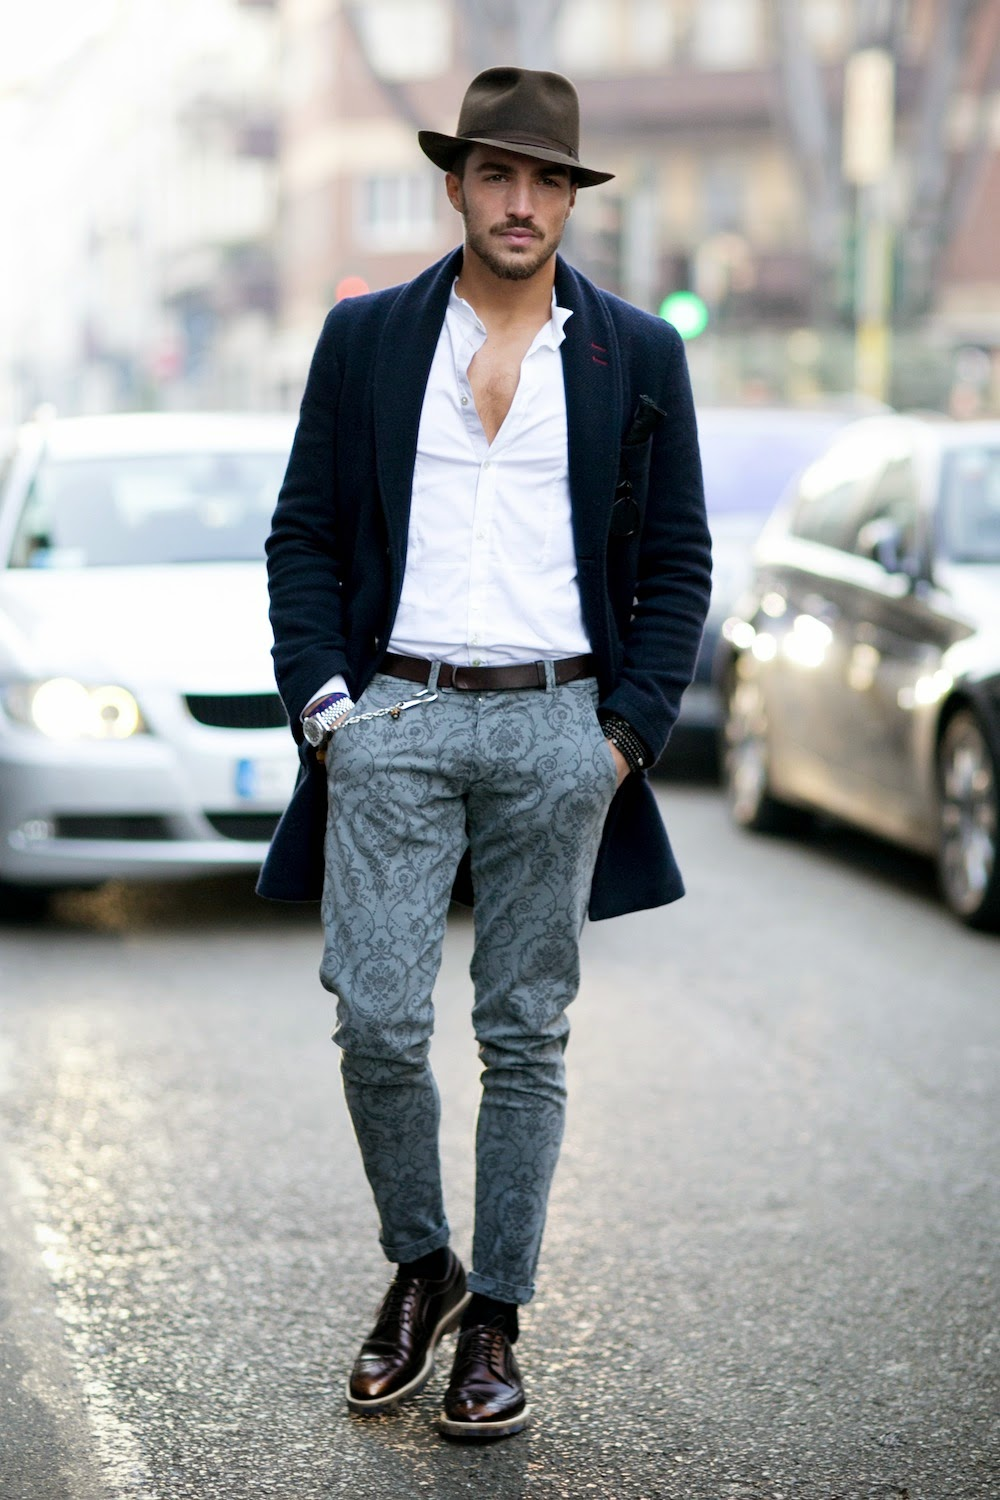 Modello Momento Style Men 39 S Celebrity Street Style Discover What They Wear